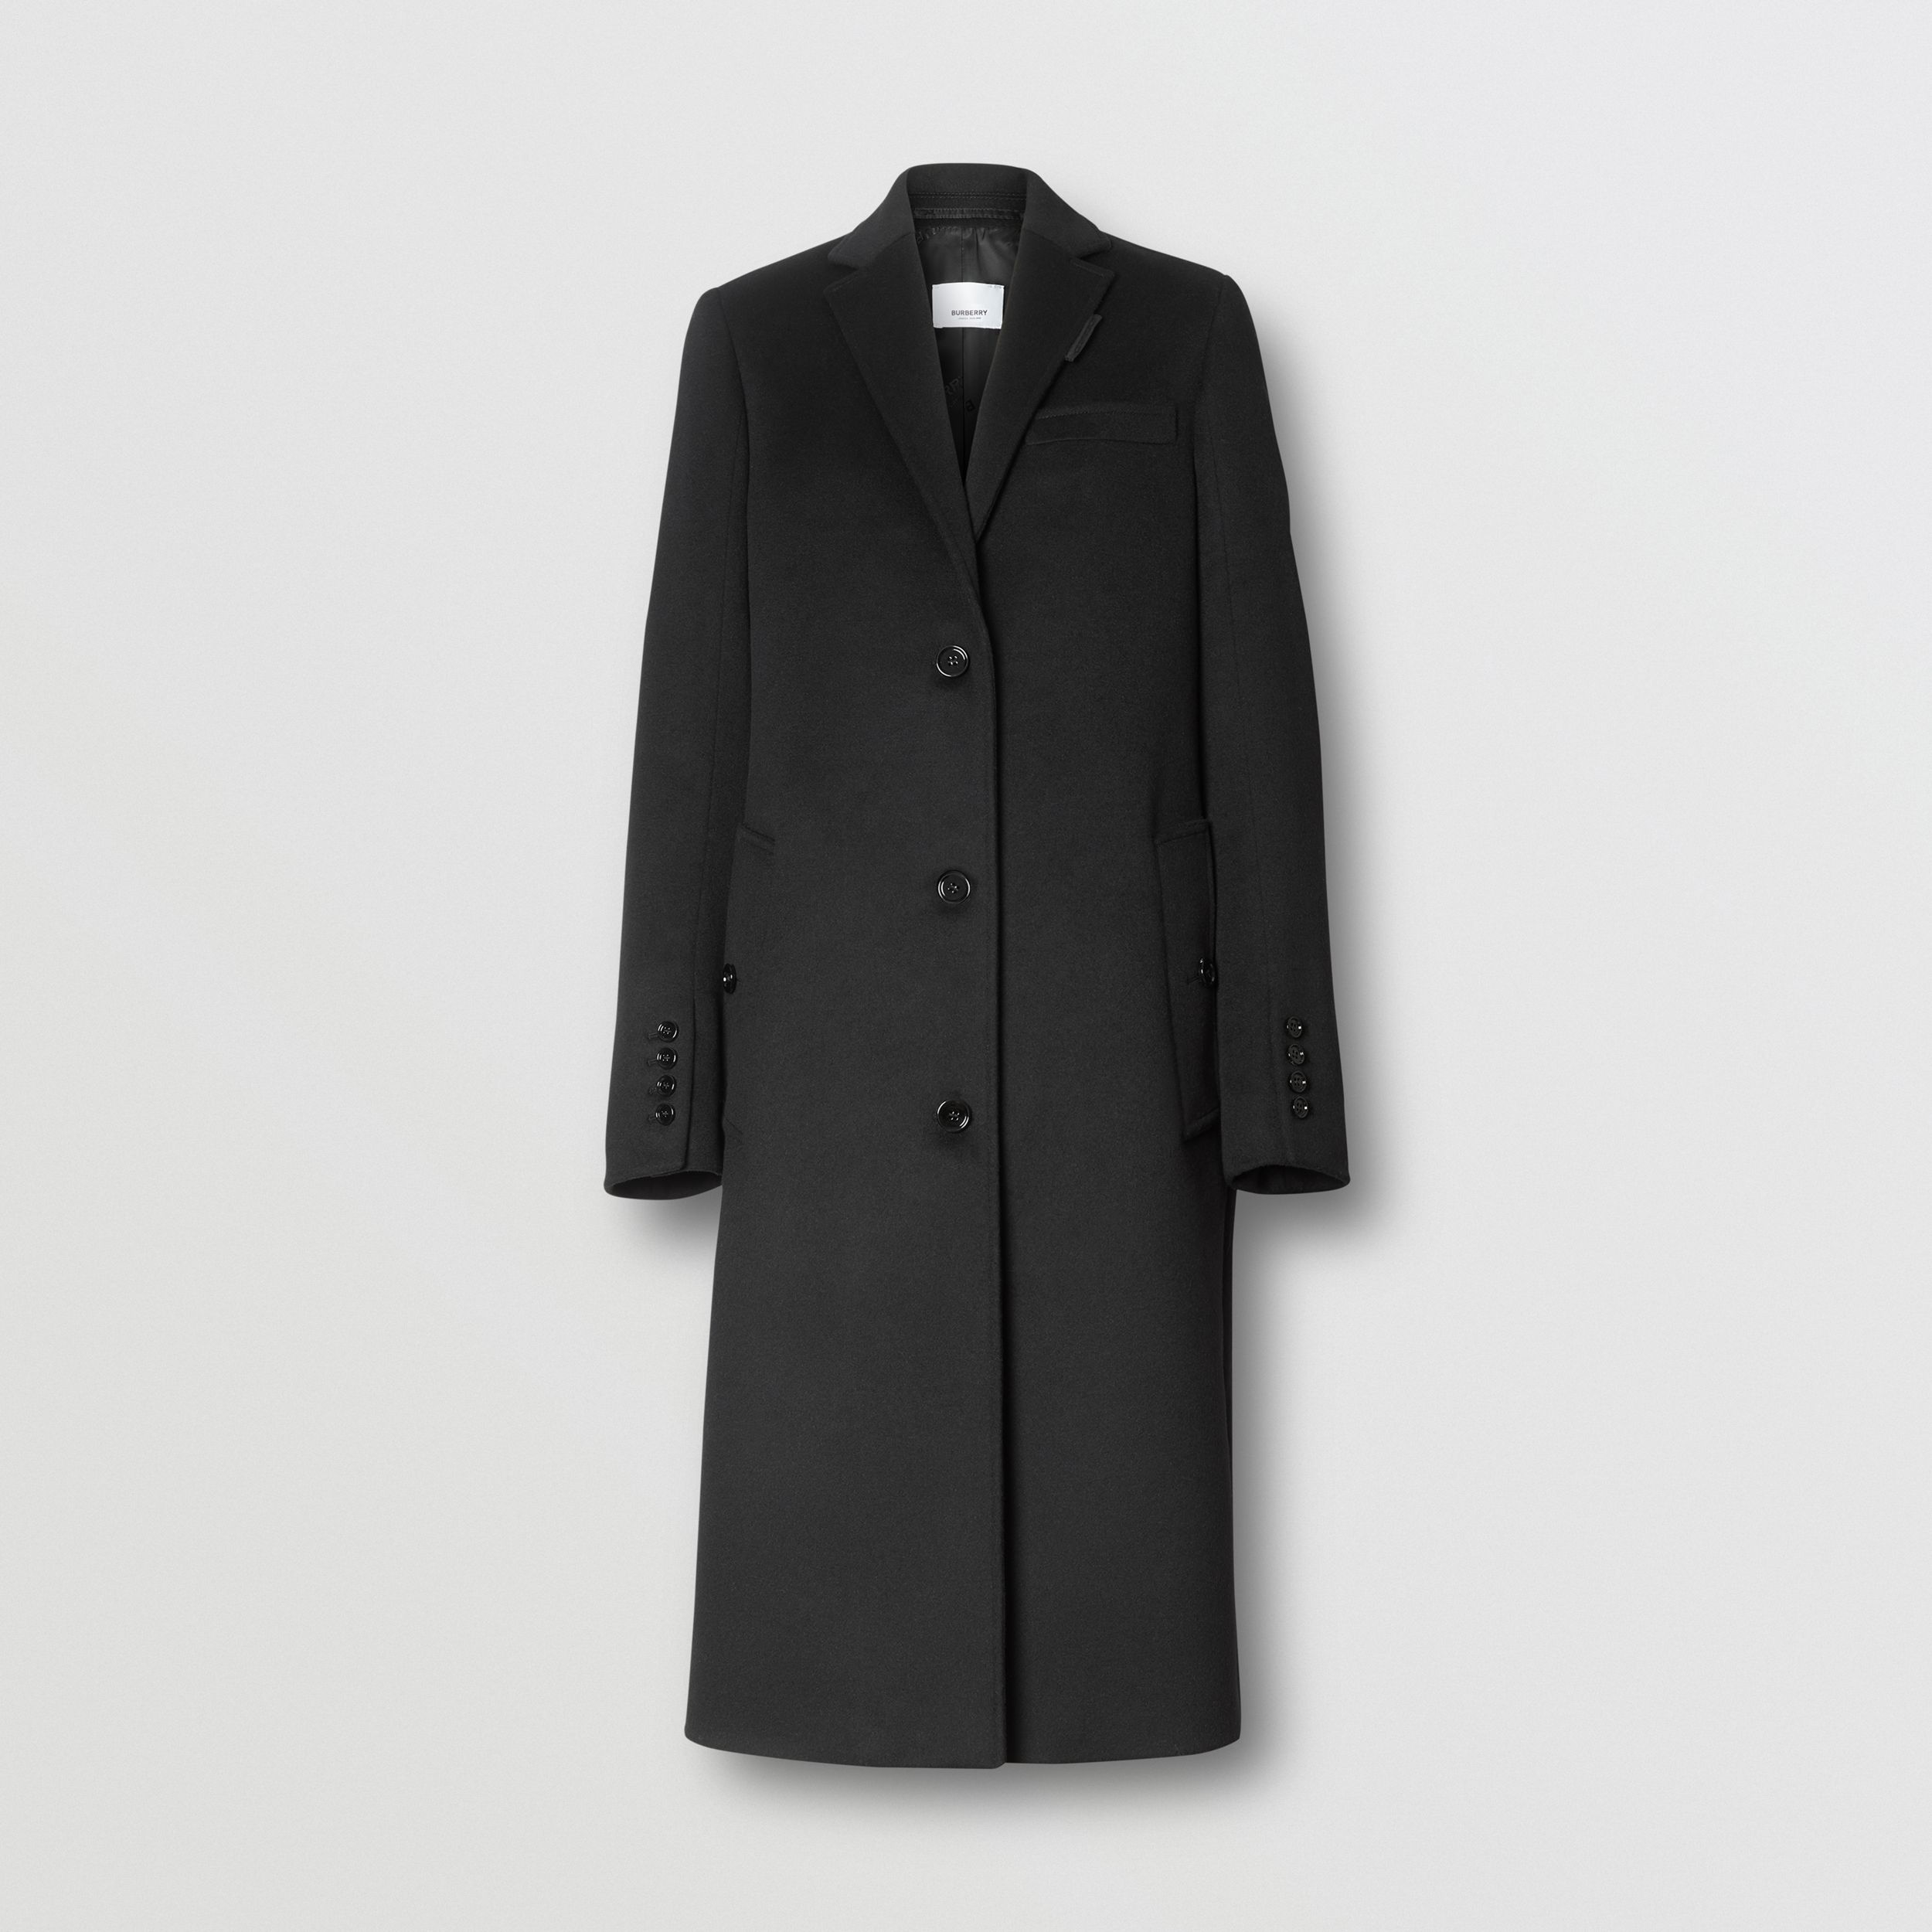 Wool Cashmere Tailored Coat in Black - Women | Burberry - 4